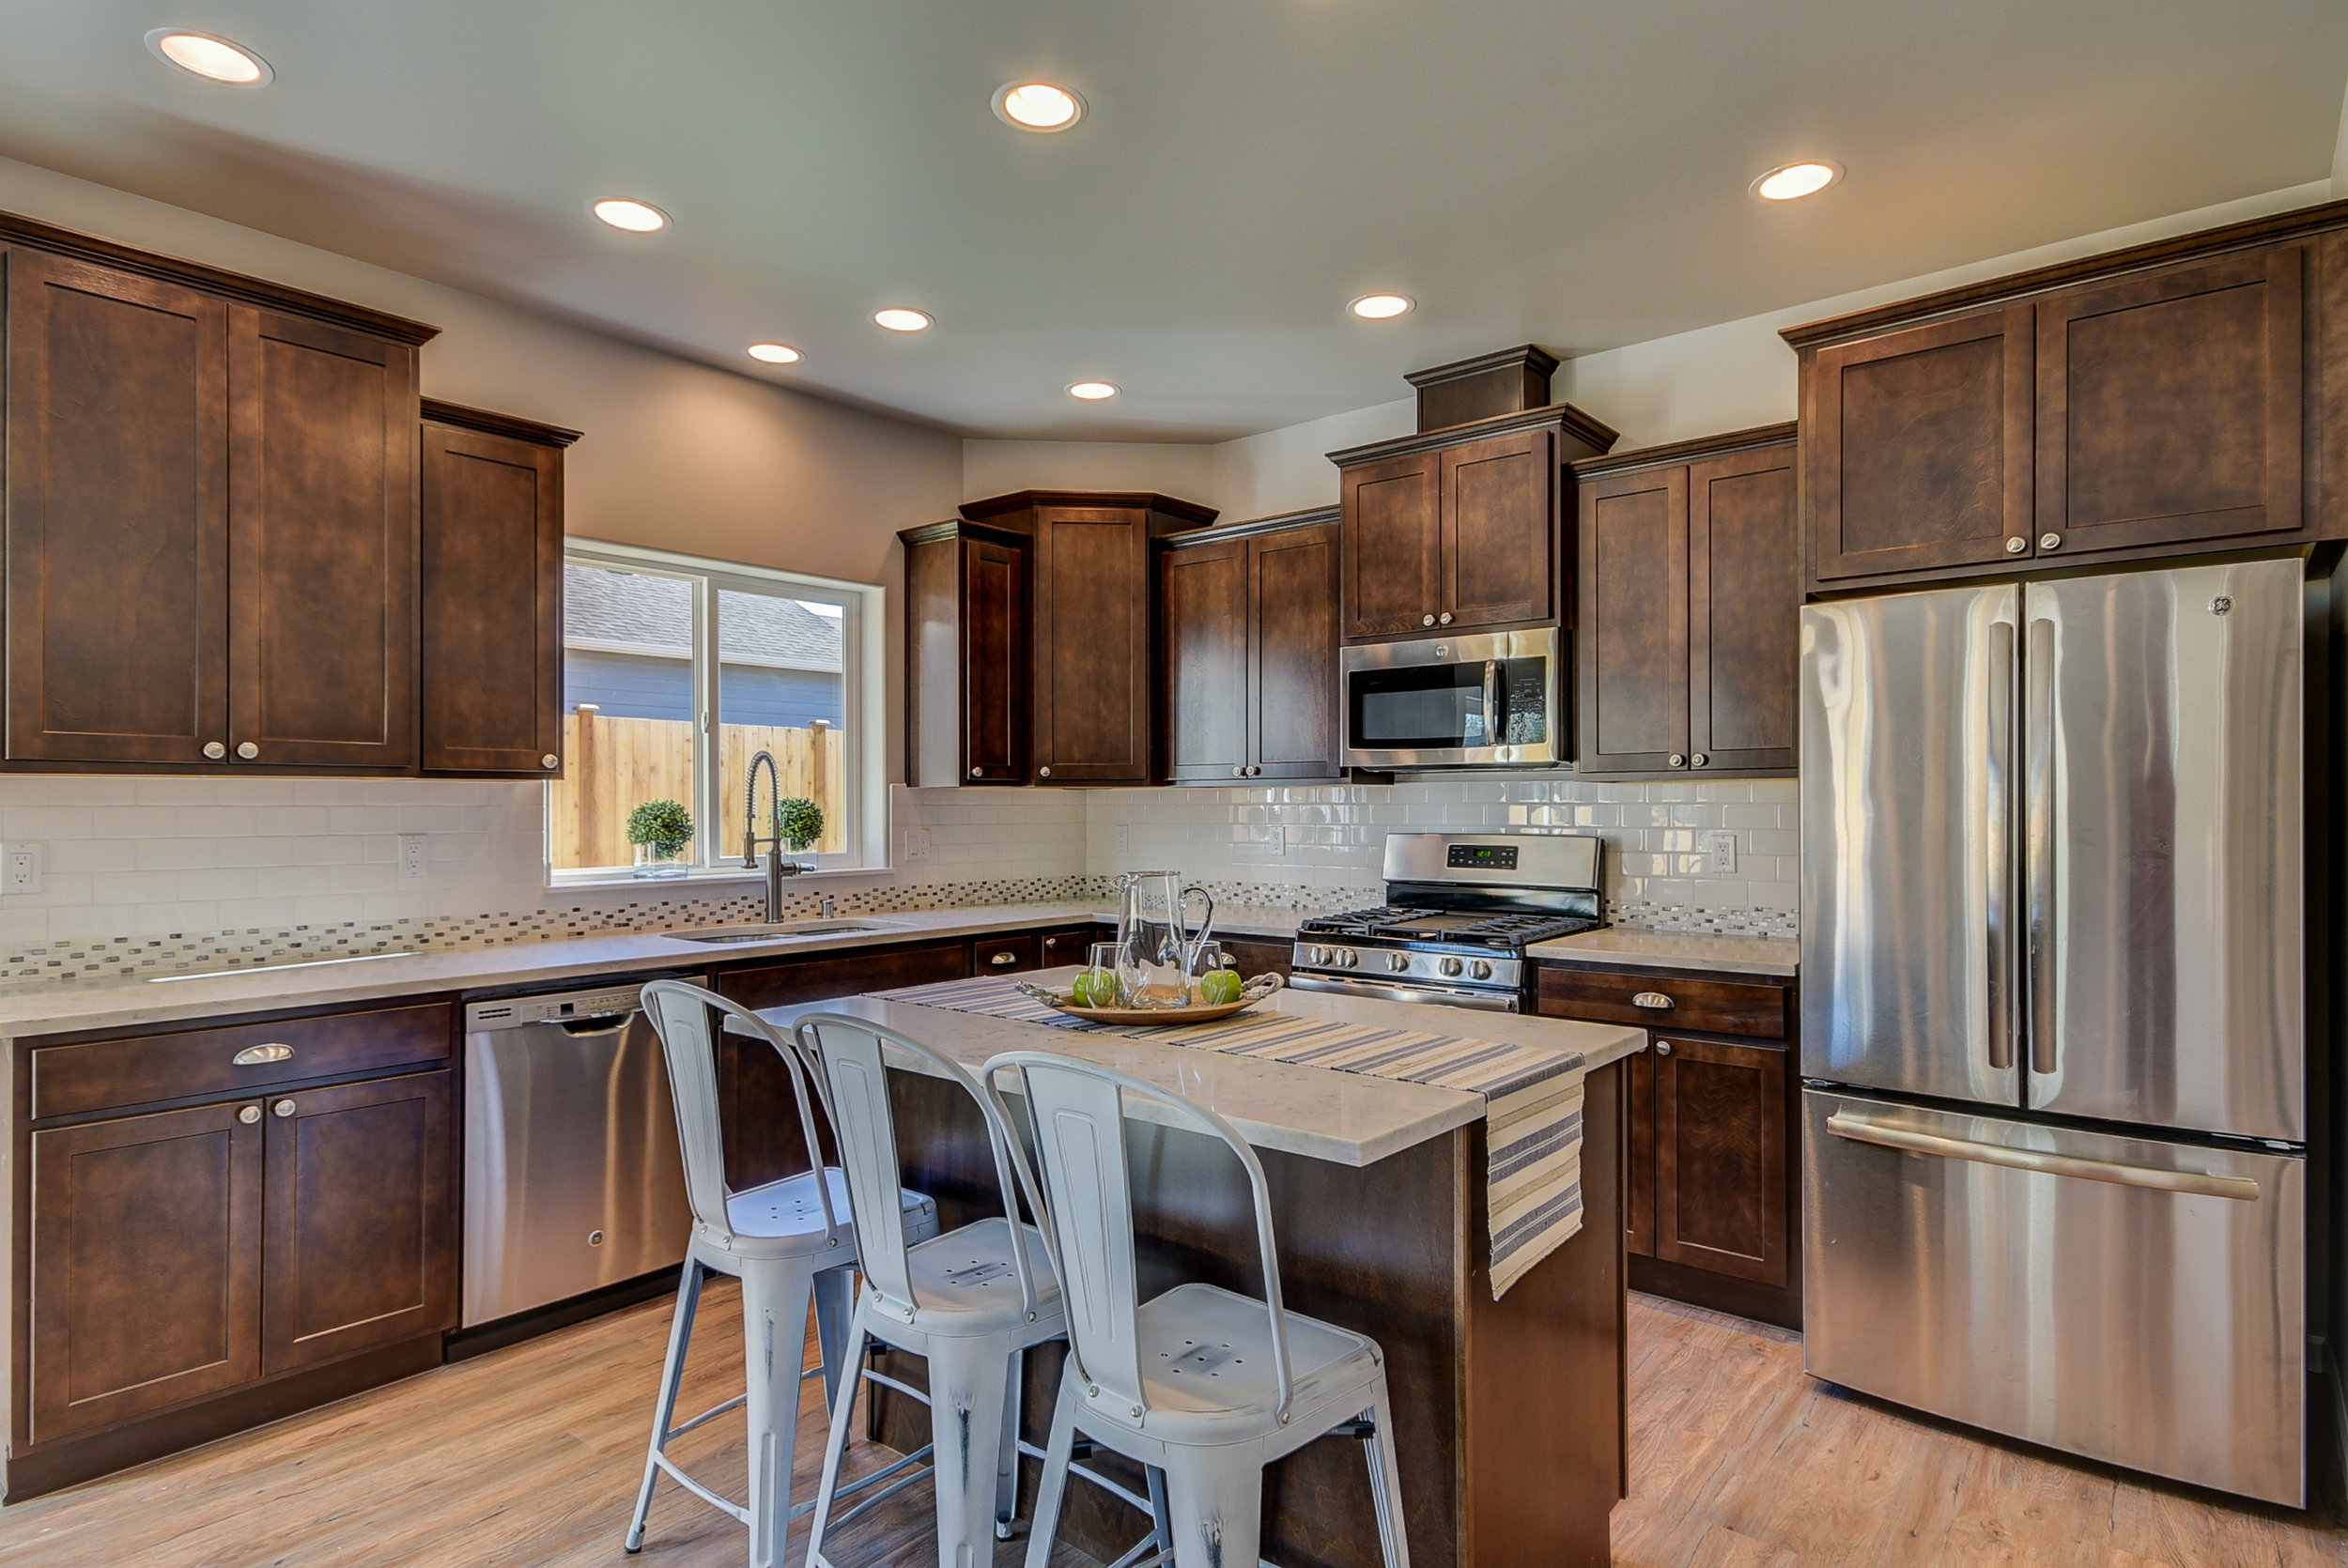 What's cookin'? A fabulous kitchen!... Quartz counter-tops, dining-island, ample storage space, & all appliances stay...